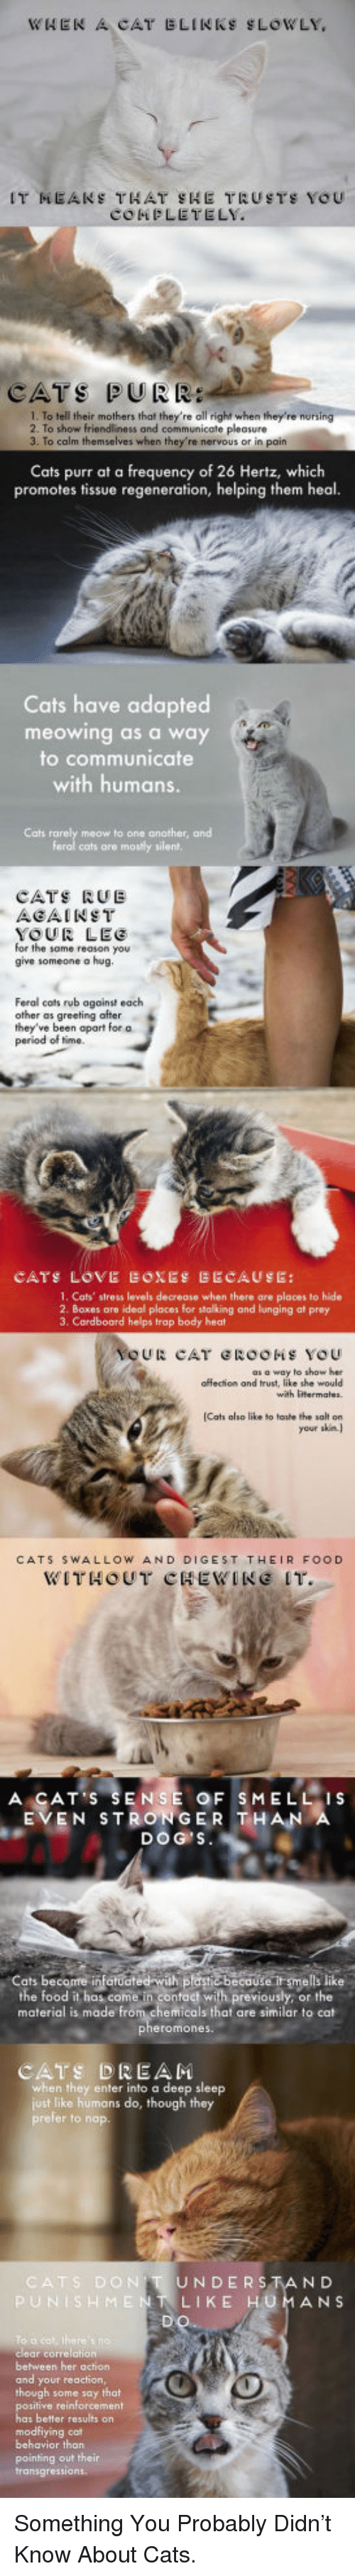 Cats, Food, and Stalking: CATS PURR  1. To tell their mothers that they're all right when they're  2. To show friendliness and  3. To calm themselves when they re nervous or in pain  pleasure  Cats purr at a frequency of 26 Hertz, whiclh  promotes tissue regeneration, helping them heal.  Cats have adapted  meowing as a way  to communicate  with humans.  Cats rarely meow to one another, and  cats are mosly silent,  CATS RUE  AGAINST  YOUR LEC  for the same reason you  give someone a hug.  Feral cats rub against each  other as greeting after  they've been apart for a  1. Cats' stress levels decrease when there are places to hide  2. Boxes are ideal places for stalking and lunging at prey  3. Cardboard helps trap body heat  as a way to show hee  affection and trust, like she would  Cats also like to tashe the salt on  your skin. }  CATS SWALLOW AND DIGEST THEIR FOOD  WITHOUT CHEWINE IT.  A CAT S SENSE OF SMELLIS  EVEN STRONGER THAN  DOG S  the food it has come in contact with previously, or the  material is made from chemicals that are similar to cat  CATS DREAM  when they enter into a deep sleep  just like humans do, though they  prefer to nap.  UNDERSTAND  ENTLIKE HUMANS  behween her action  and your reaction  ay that  has better results on  pointing out their <p>Something You Probably Didn't Know About Cats.</p>